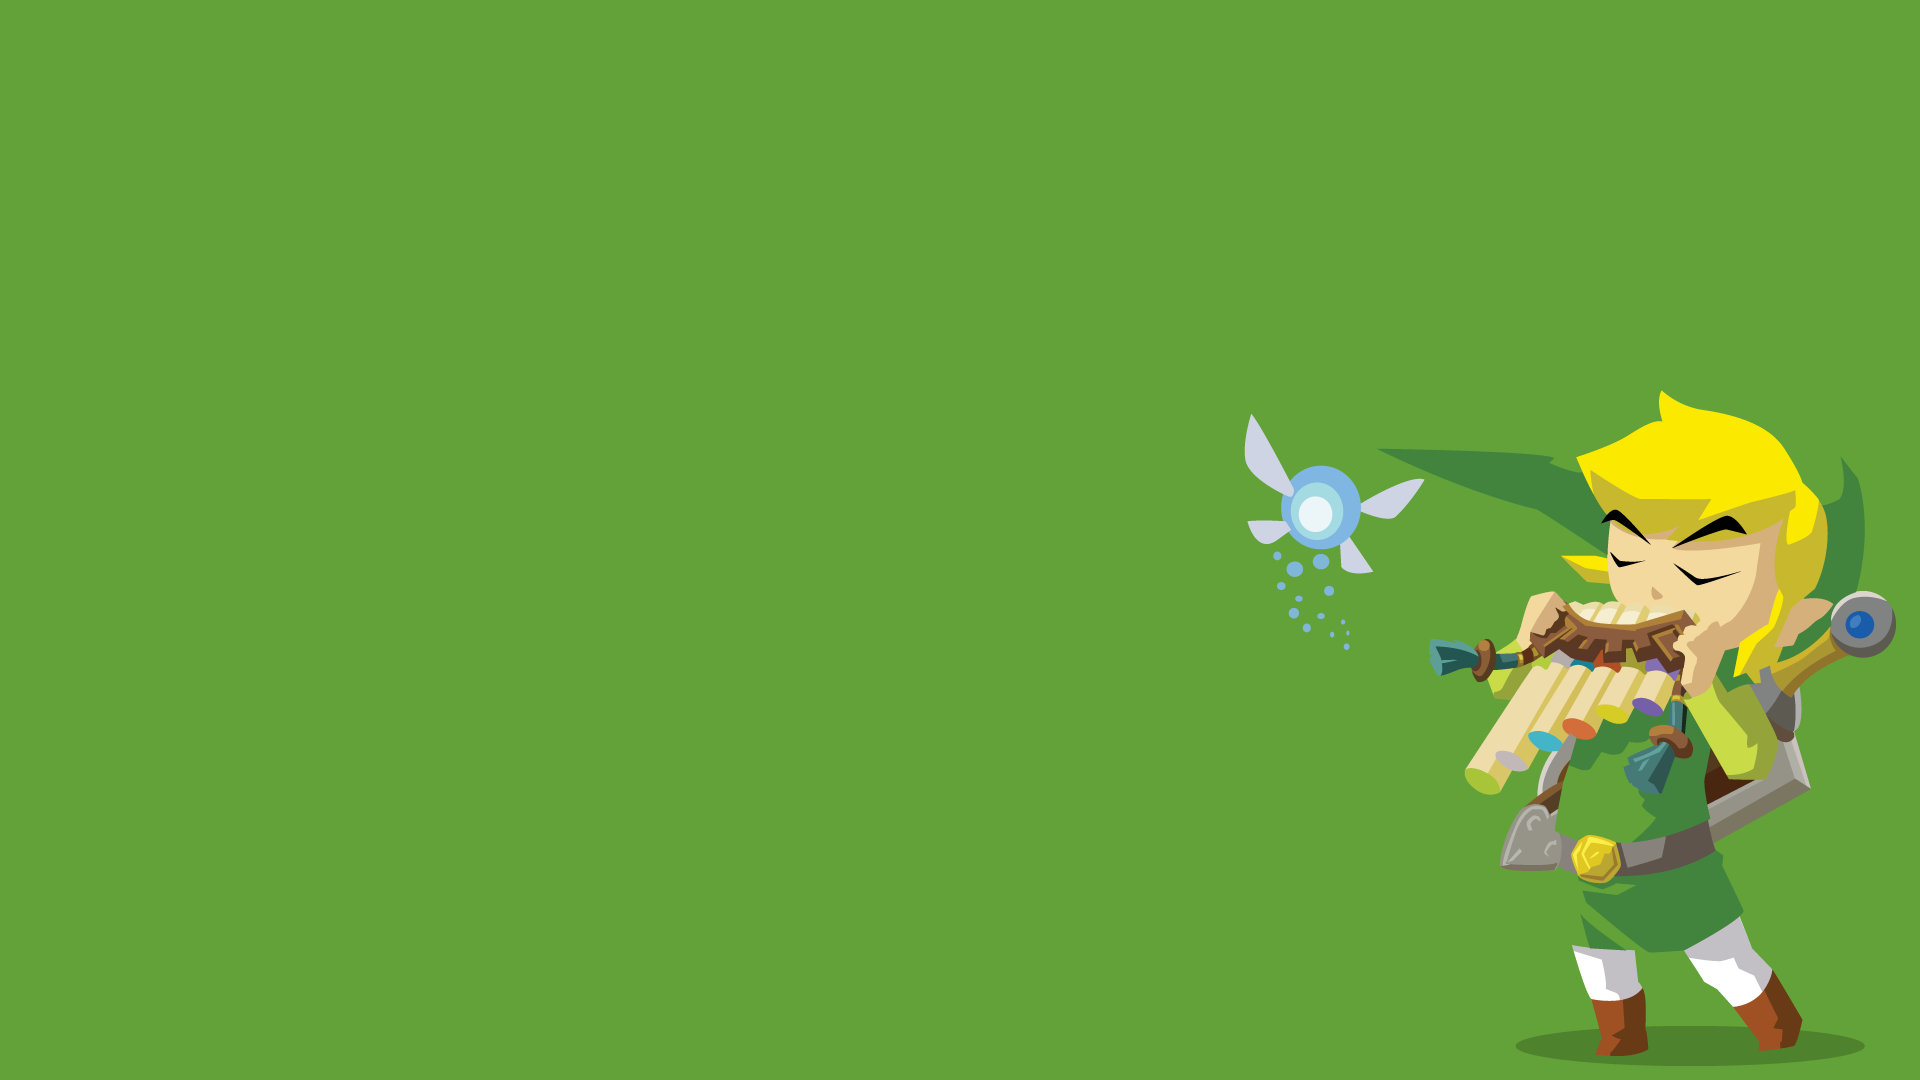 zelda minimalist wallpaper - photo #26